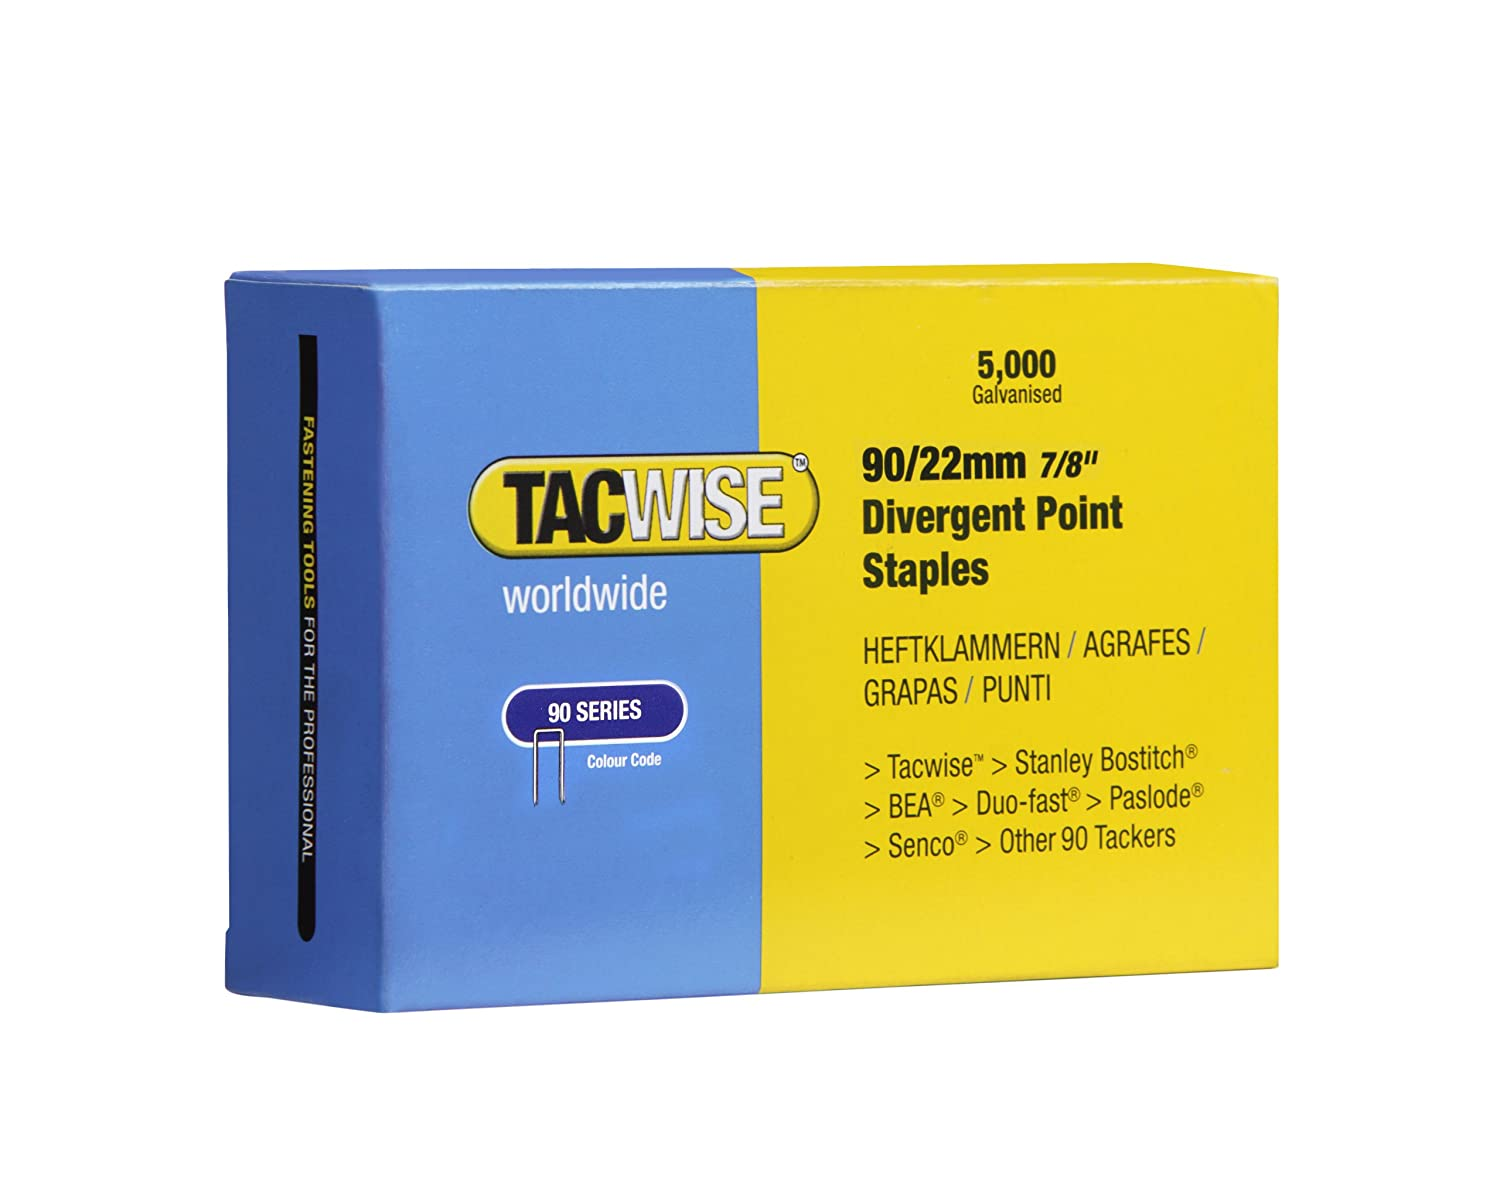 Tacwise 90/22mm Divergent Point Narrow Crown Staples (Box of 5000) 0313